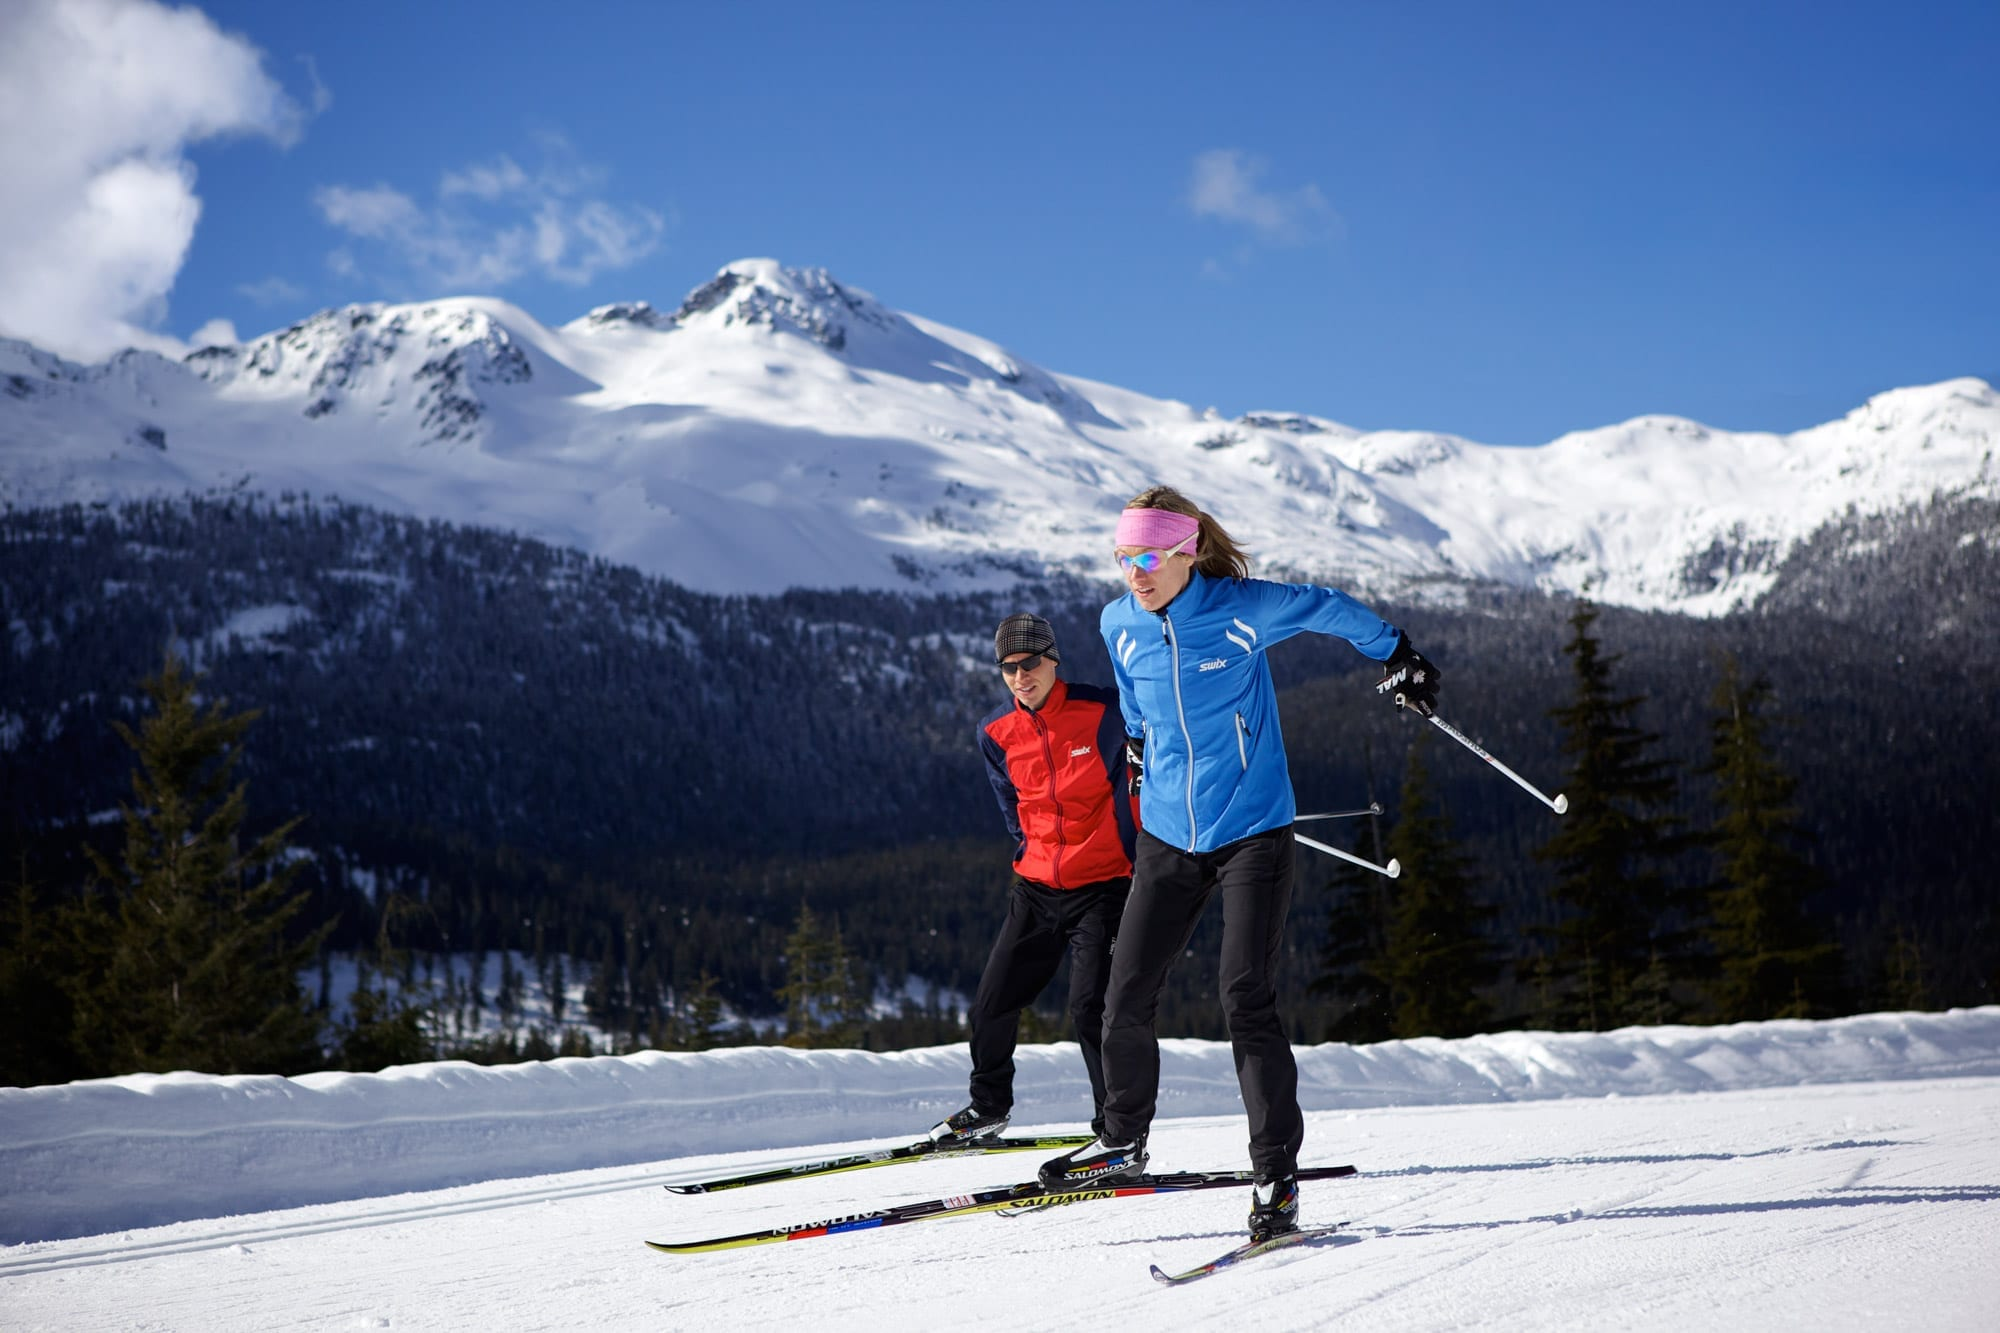 Cross Country Skiing Courses Trails Whistler Canada